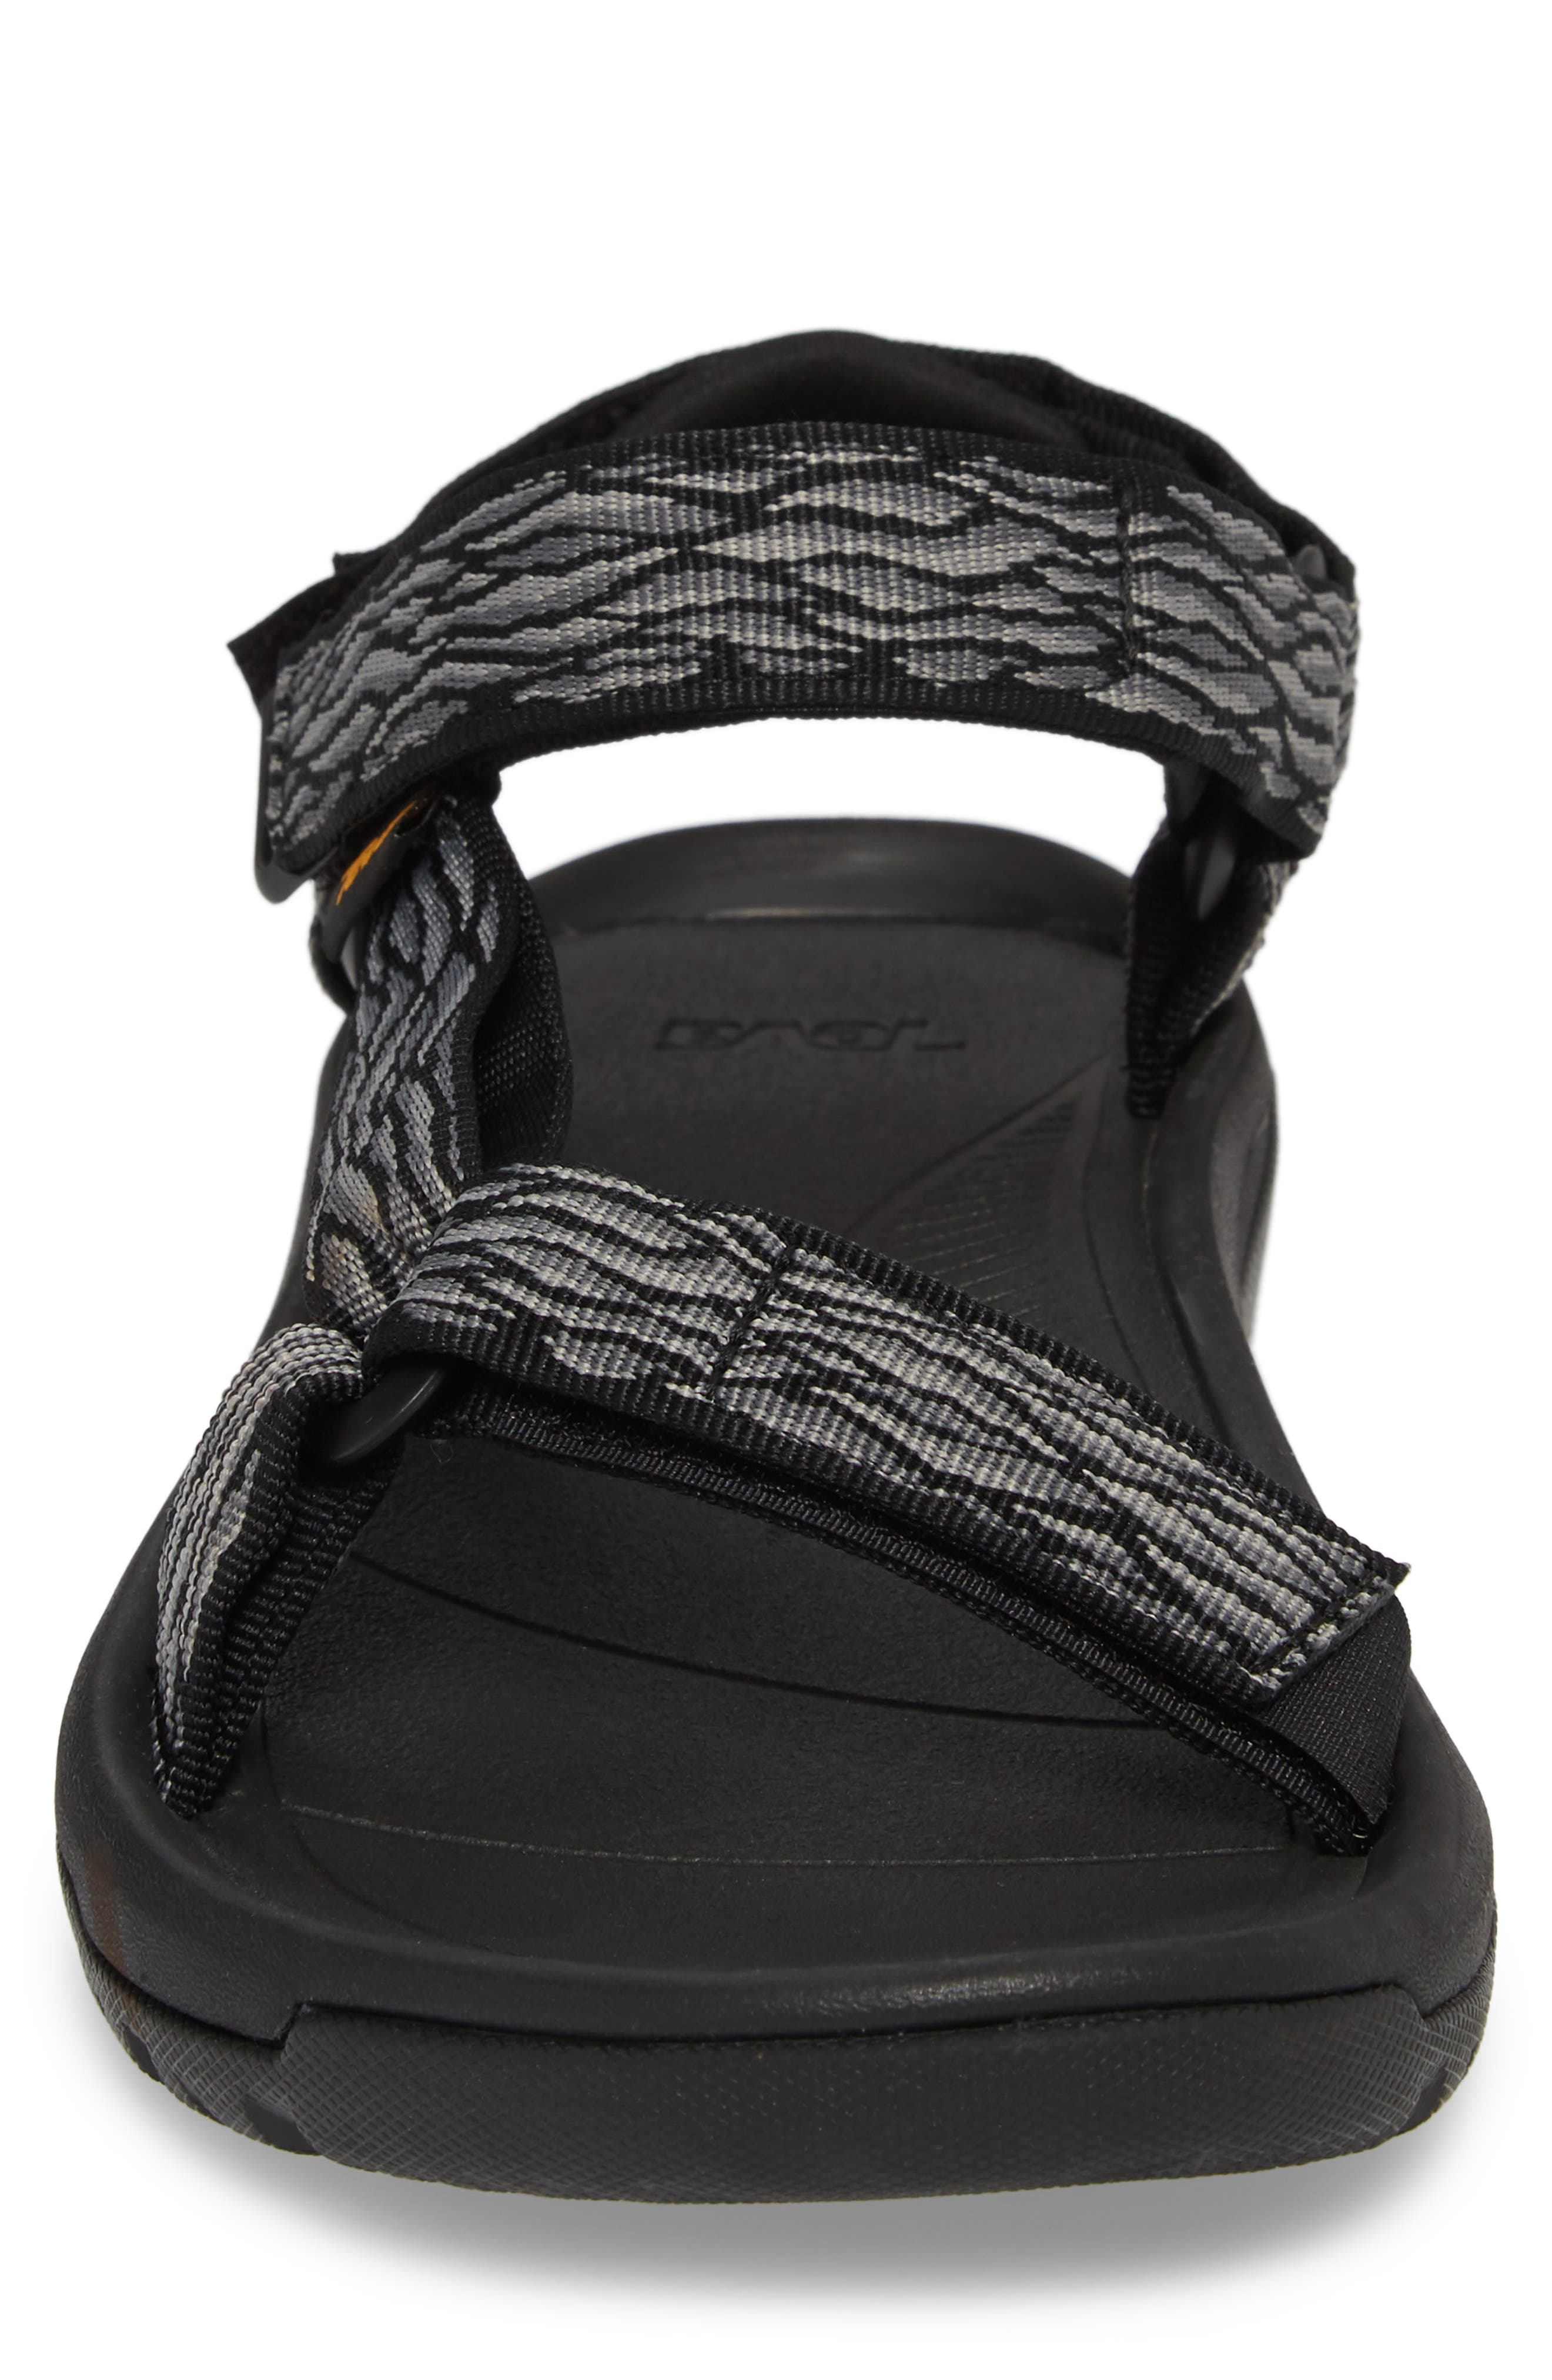 Hurricane XLT 2 Sandal,                             Alternate thumbnail 4, color,                             BLACK/ GREY NYLON